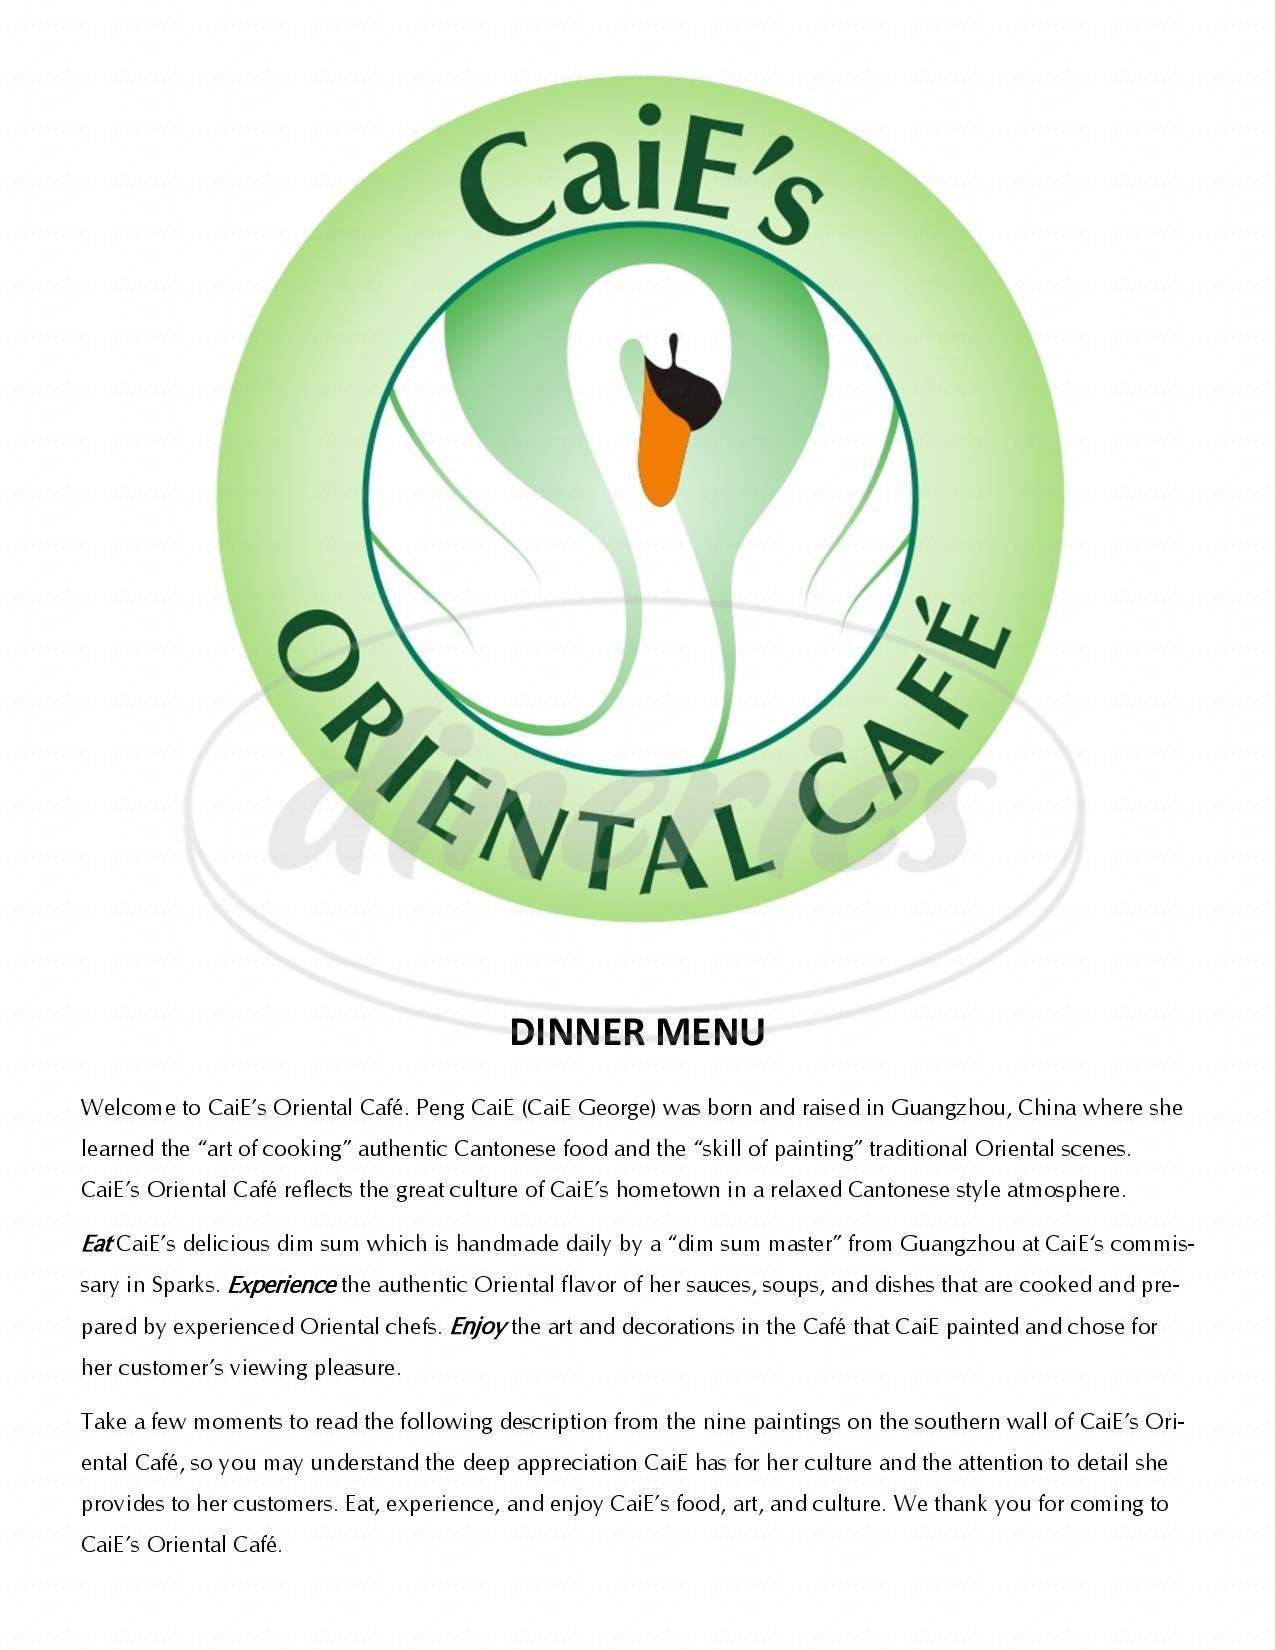 menu for Caie's Oriental Cafe